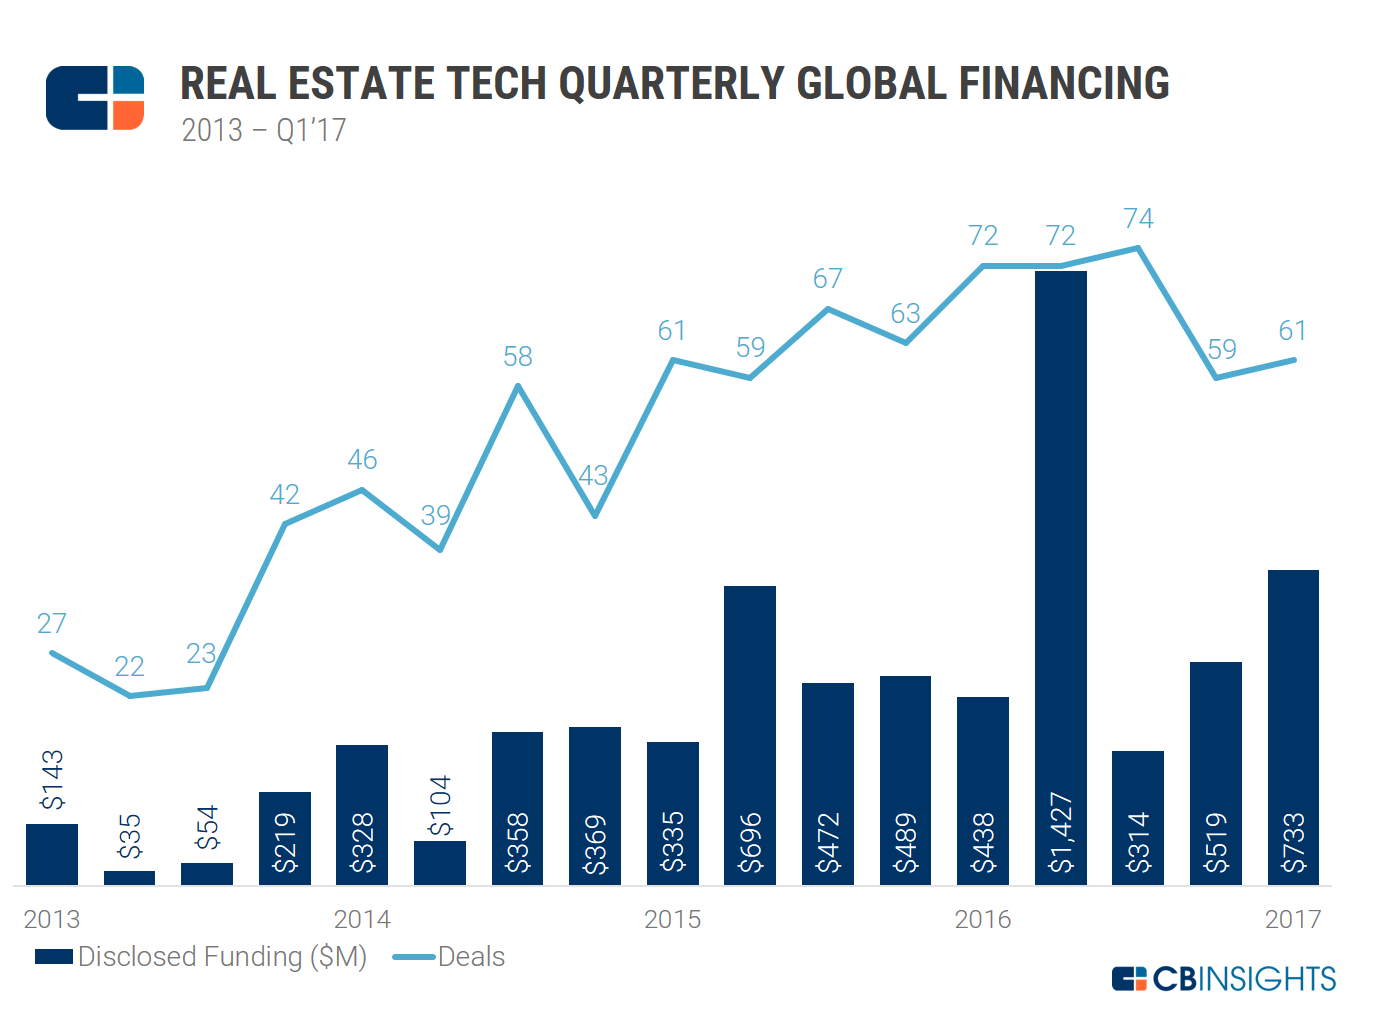 RE Tech Qaurterly Funding 2013-Q1'17